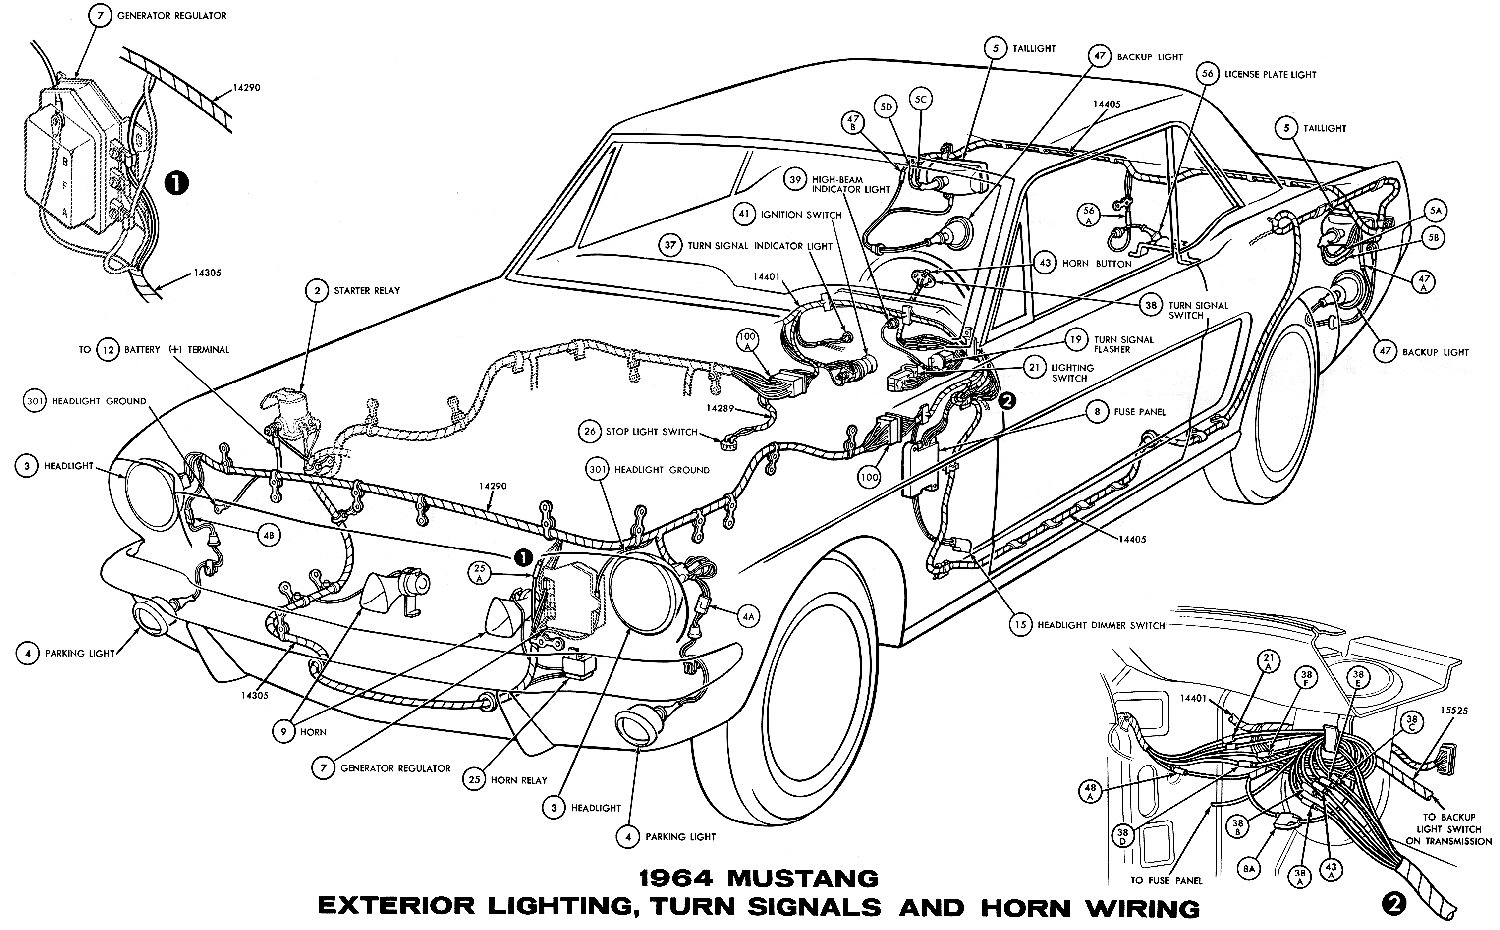 1965 Mustang Backup Light Switch Wiring Library 1972 Ford F100 Headlight Diagram 1964 Exterior Lighting Turn Signals And Horns Pictorial Or Schematic